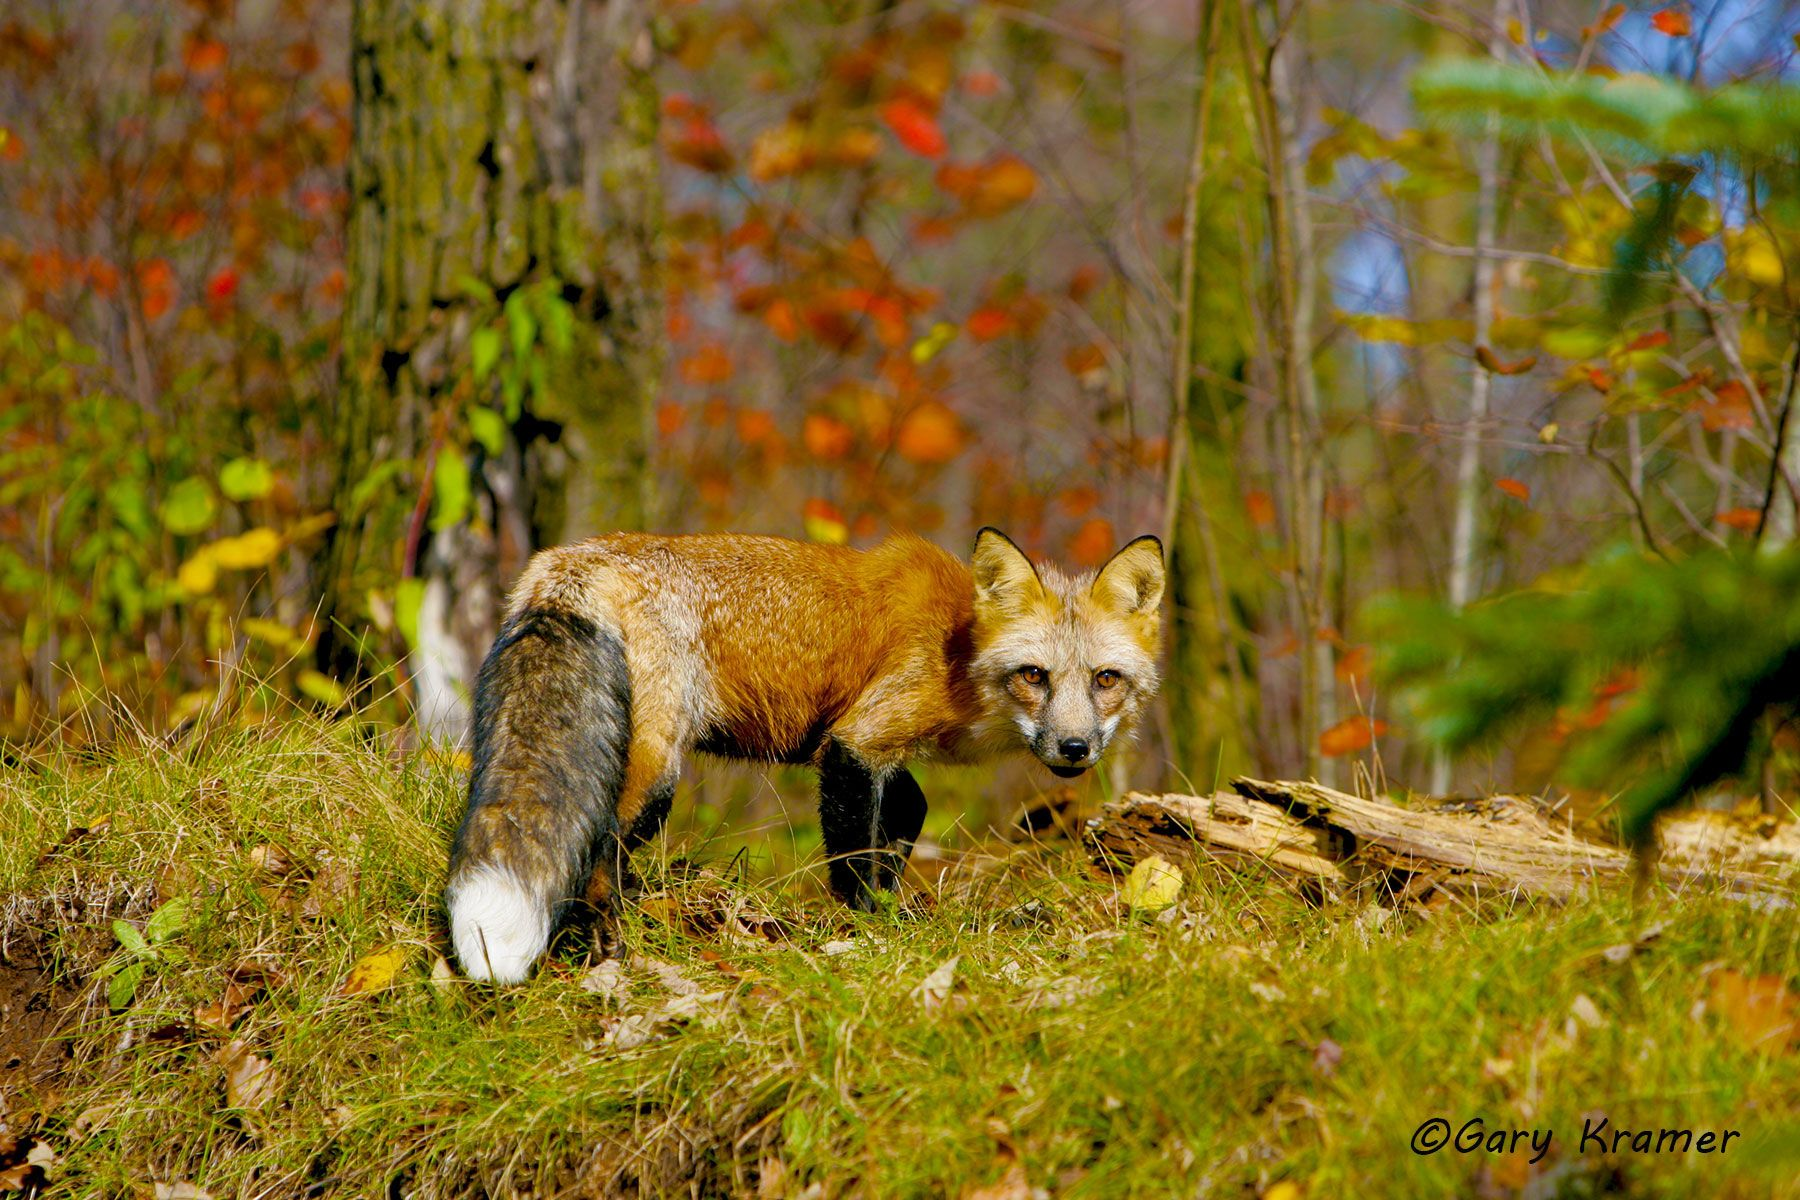 Red Fox (Vulpes fulva) - NMFr#327d